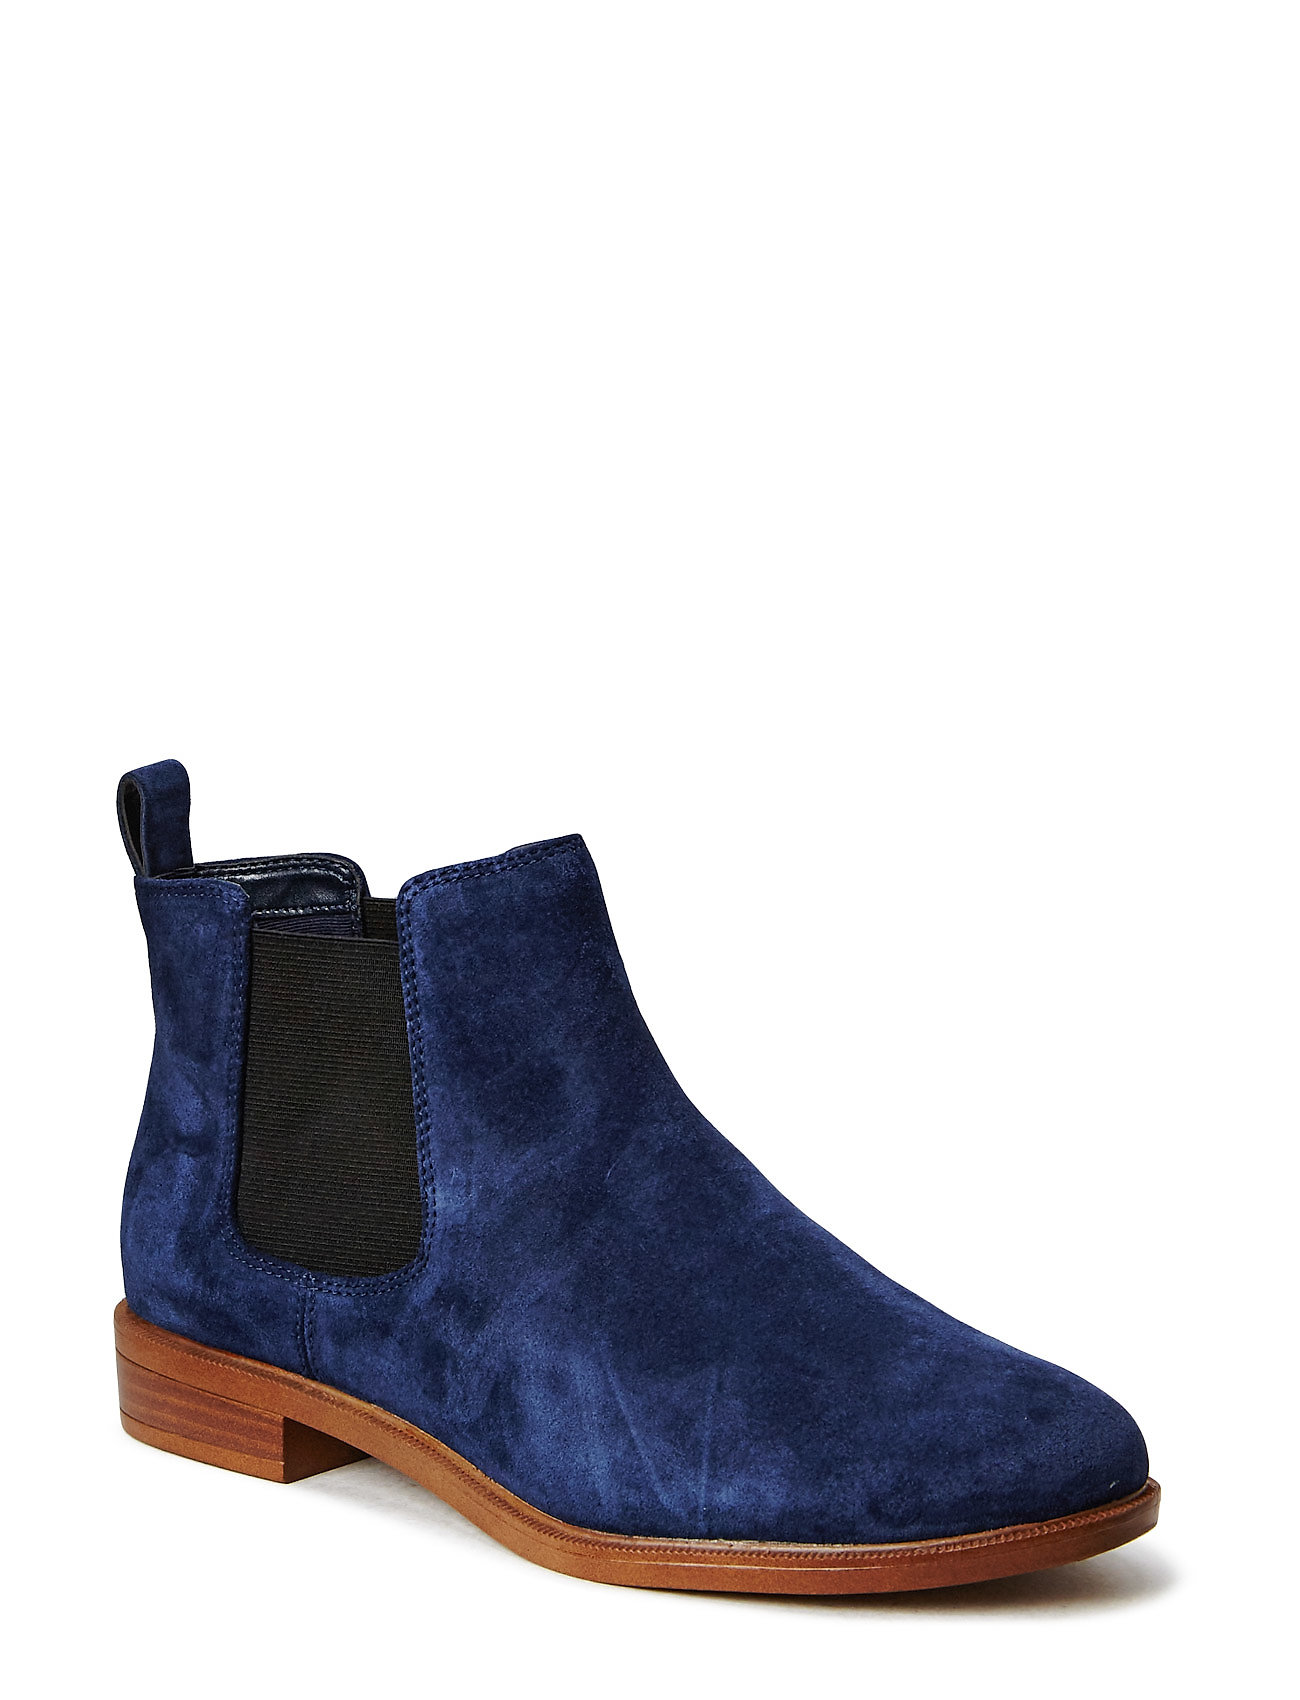 Clarks Taylor Shine - NAVY SUEDE